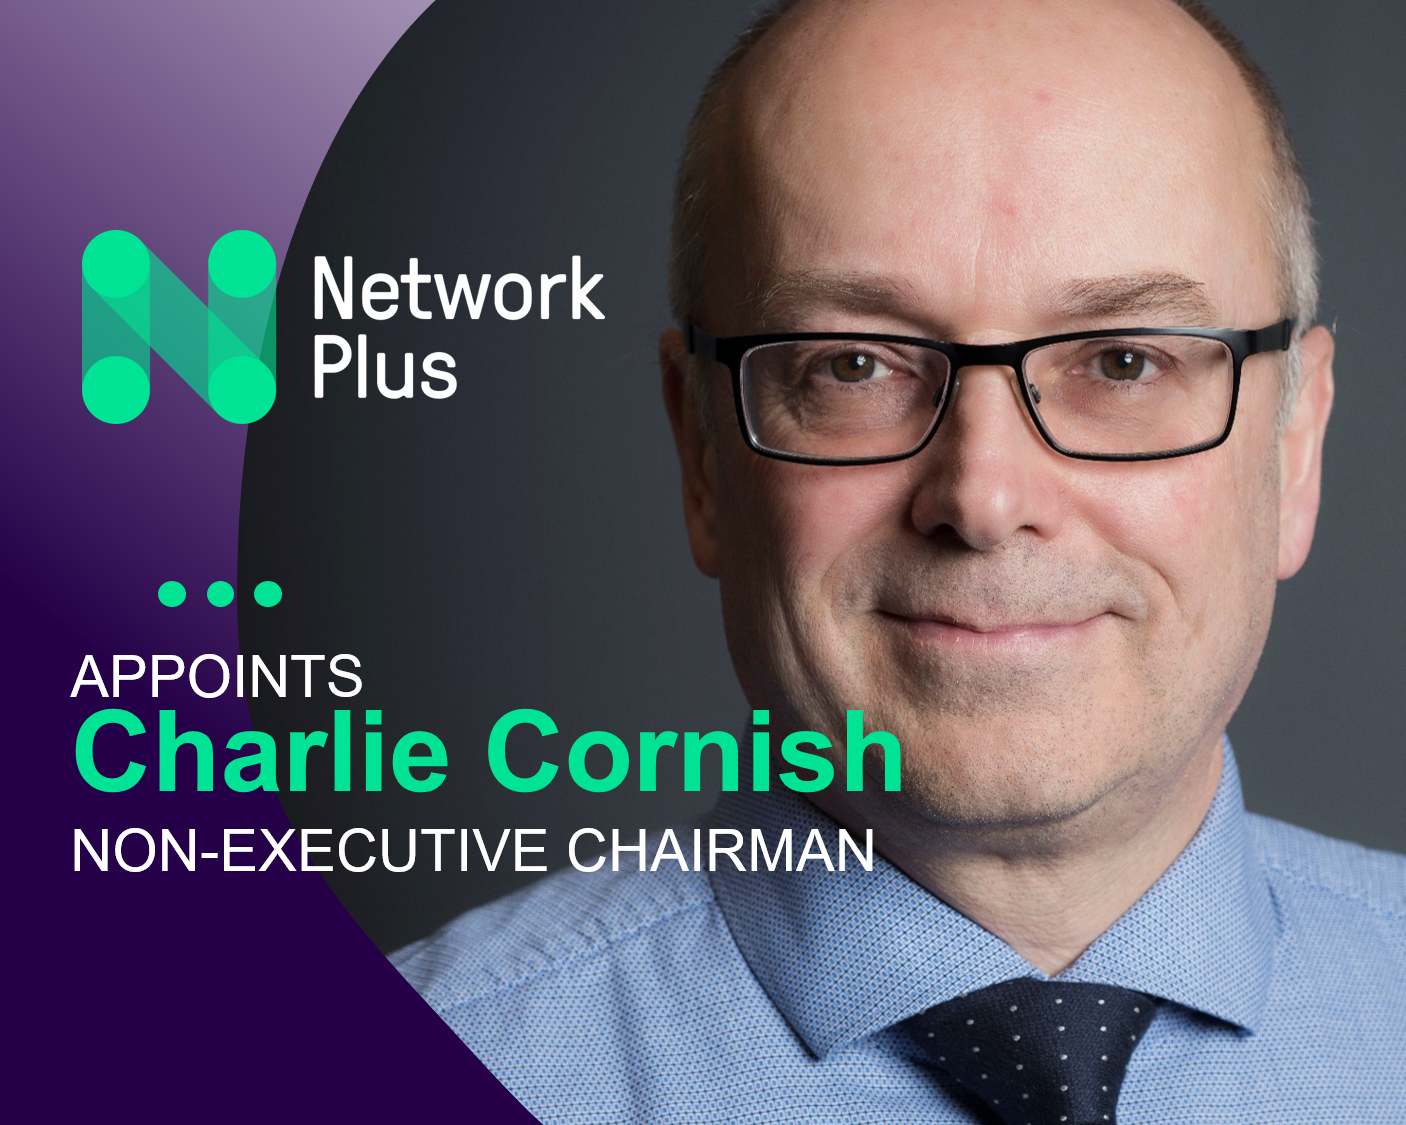 Network Plus appoints Charlie Cornish as Chairman